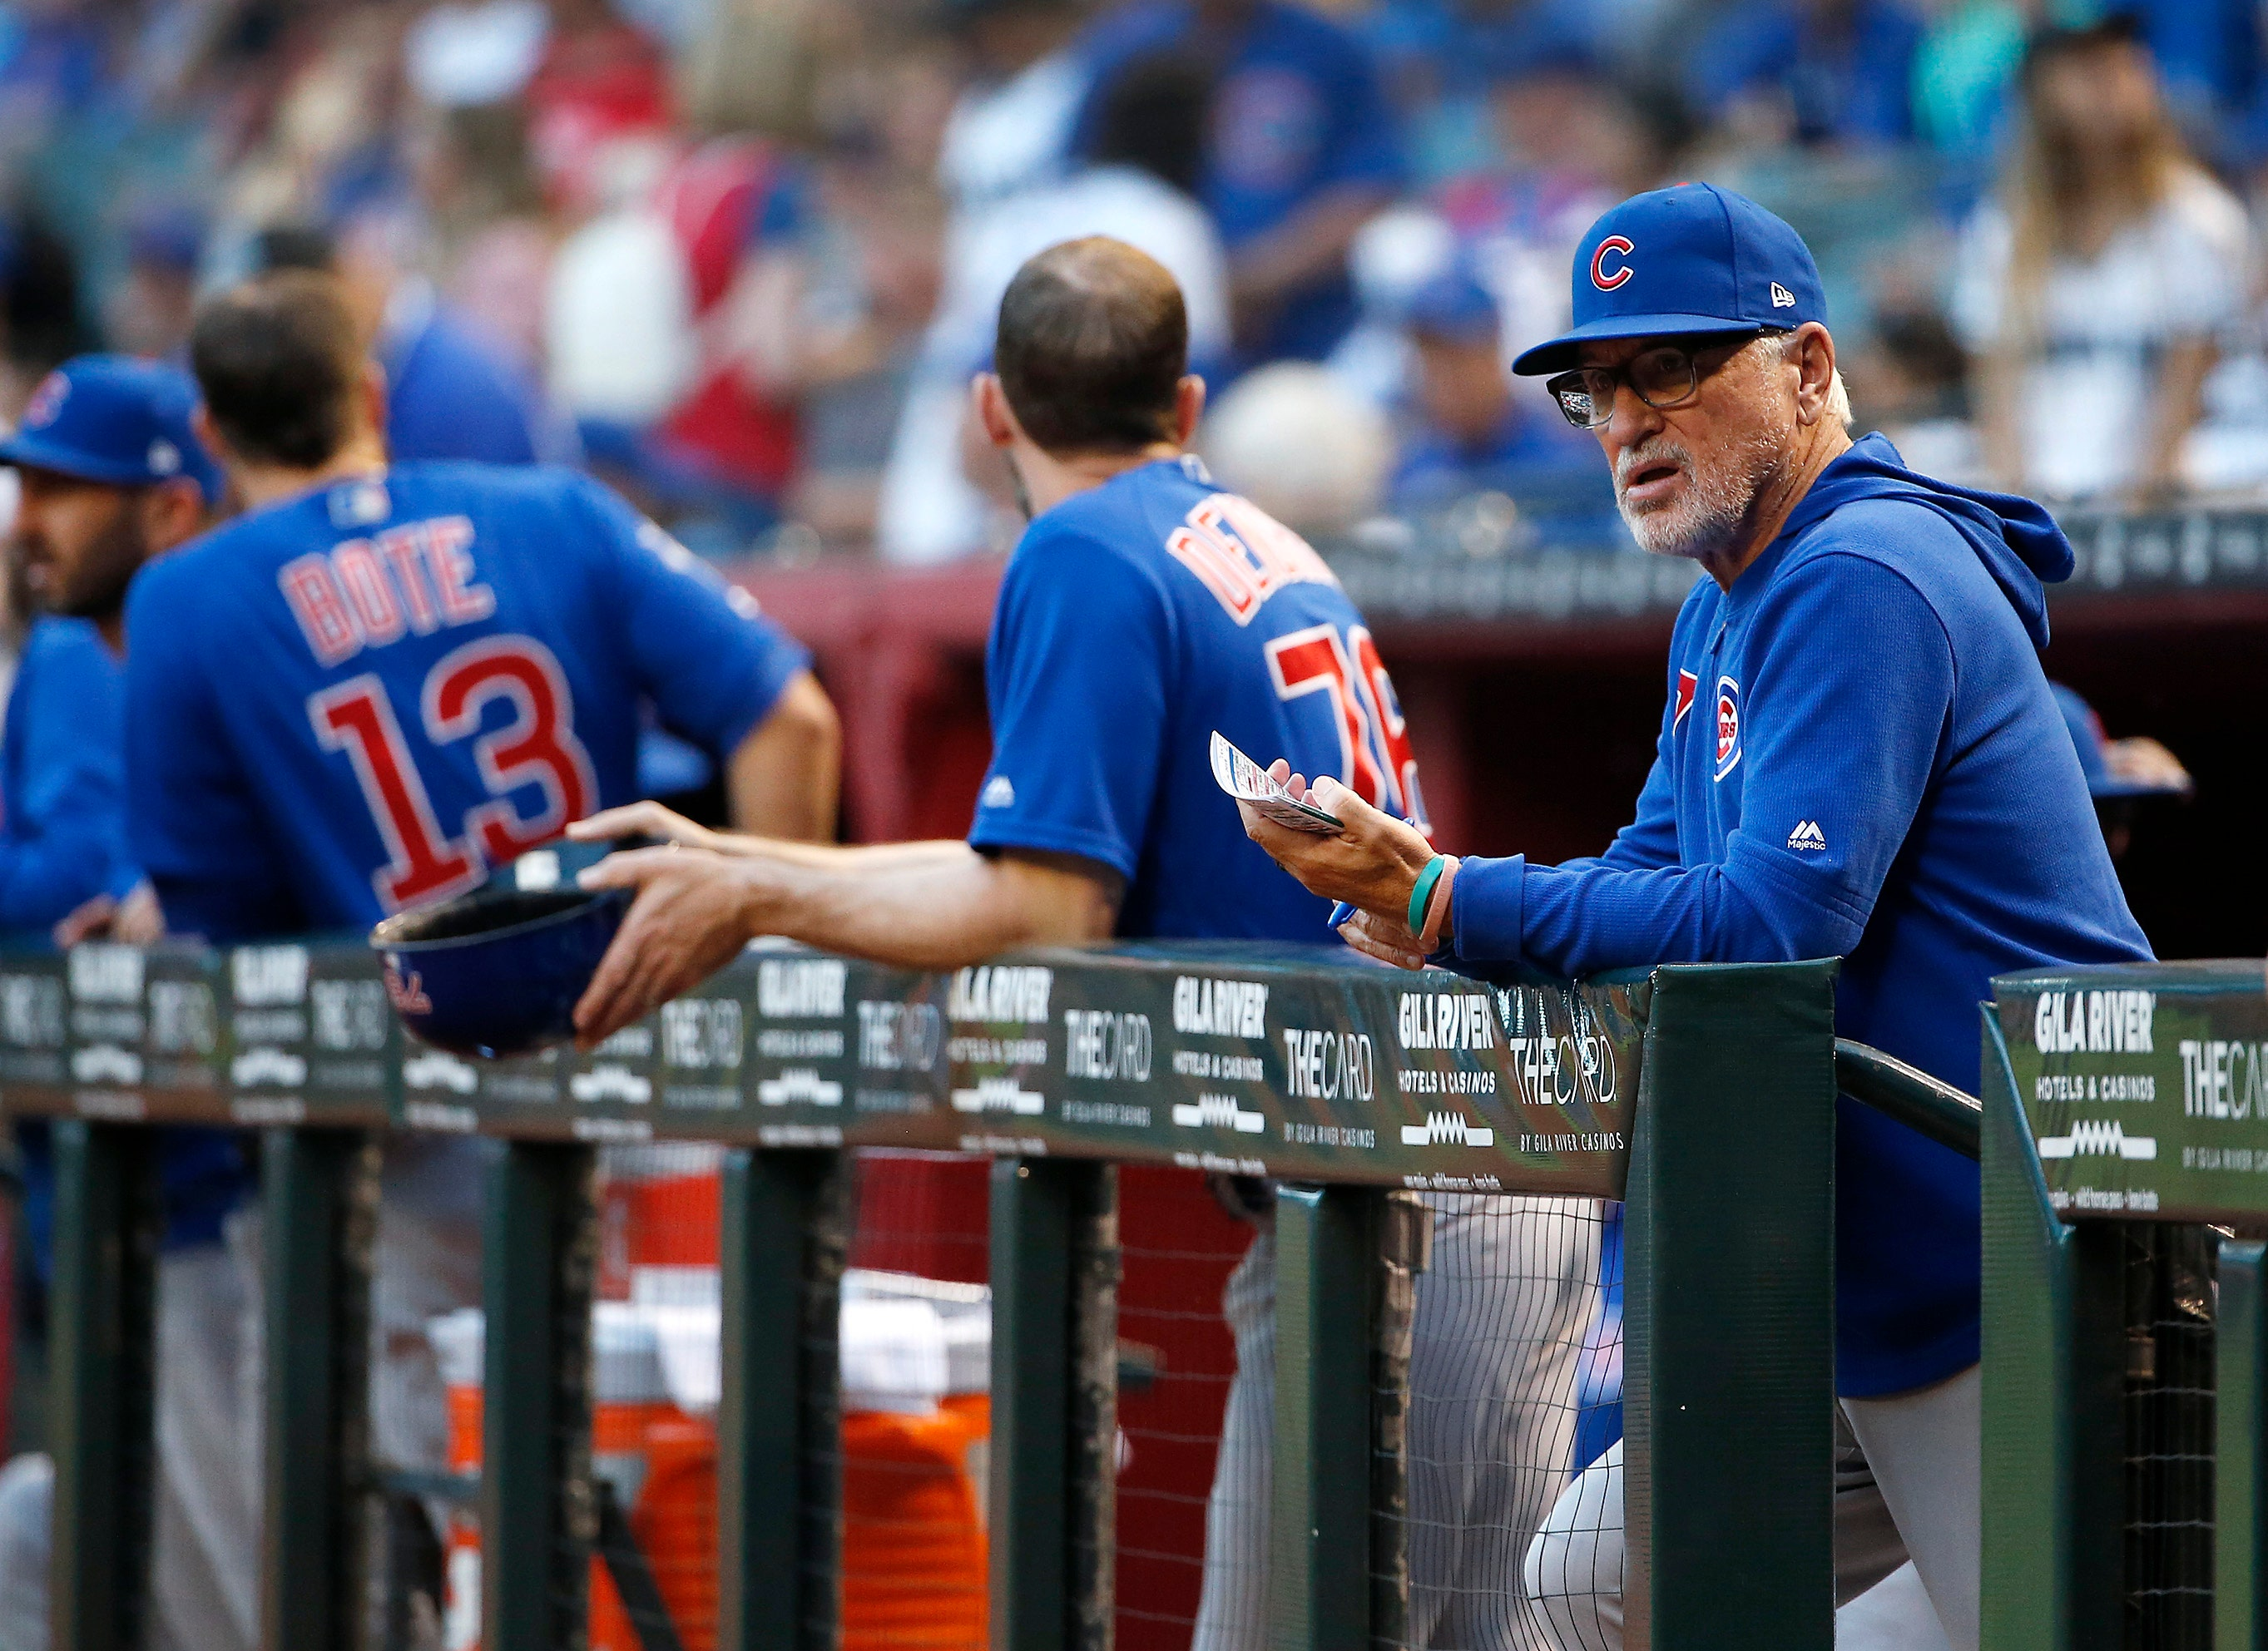 3a64bebf0c7 Chicago Cub manager Joe Maddon working ahead with lineups